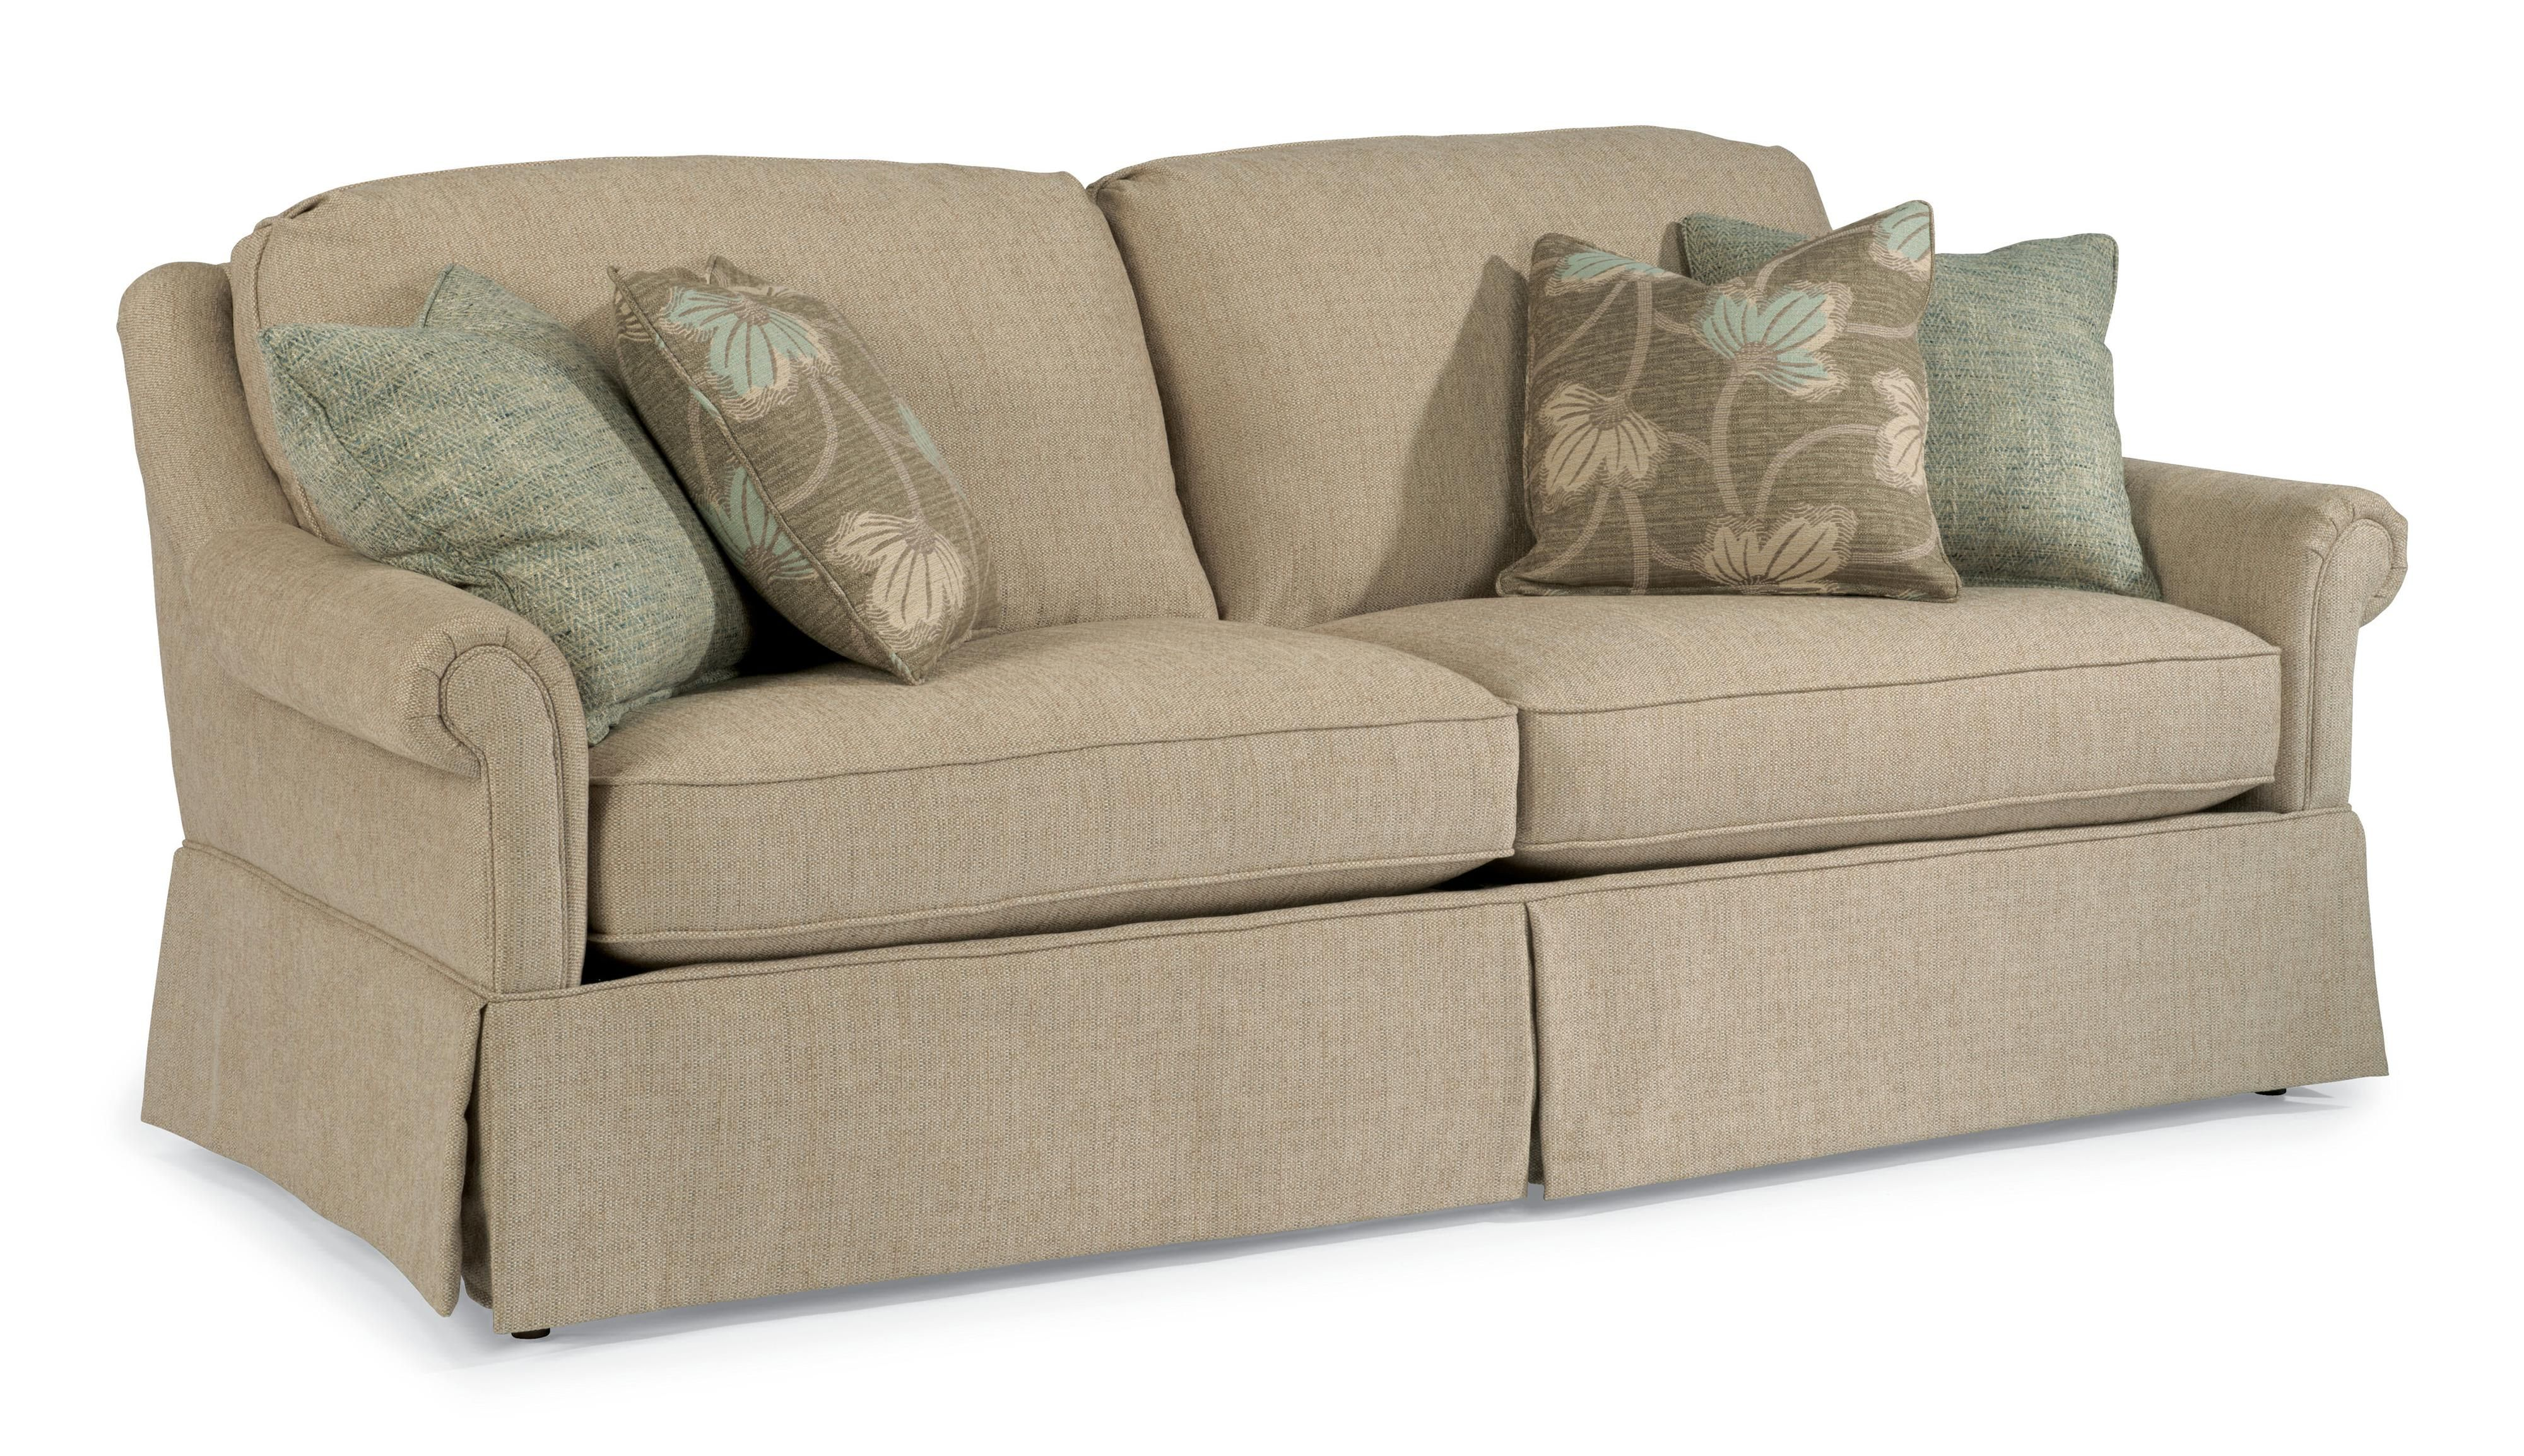 Great Traditional Skirted Sofa With Tight Rolled Arms Waco, Temple, Killeen,  Texas Furniture Store